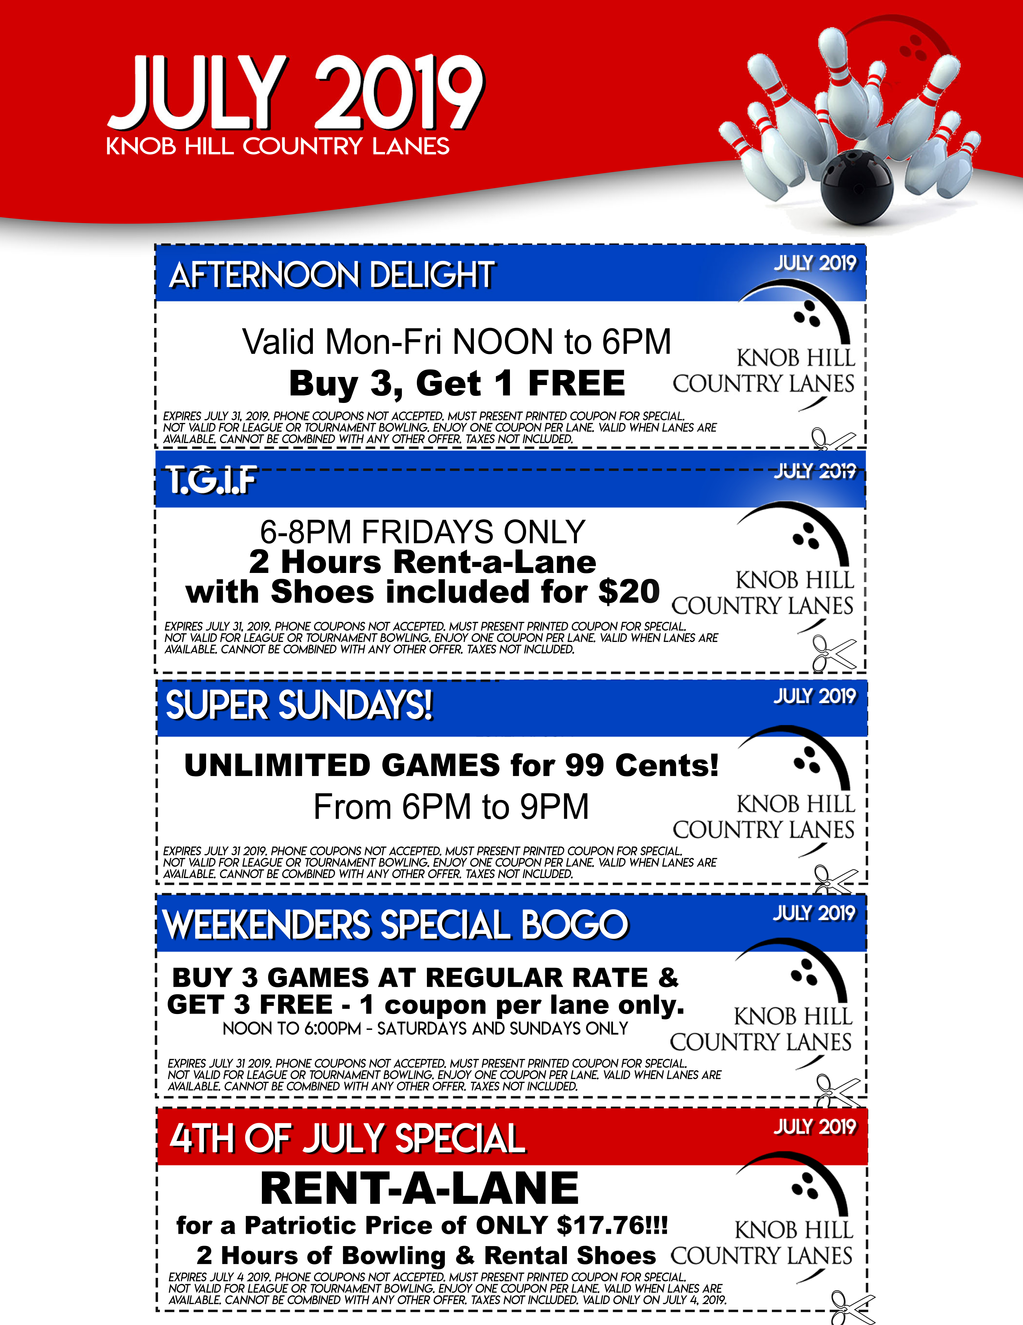 Knob Hill Country Lanes' June Coupons